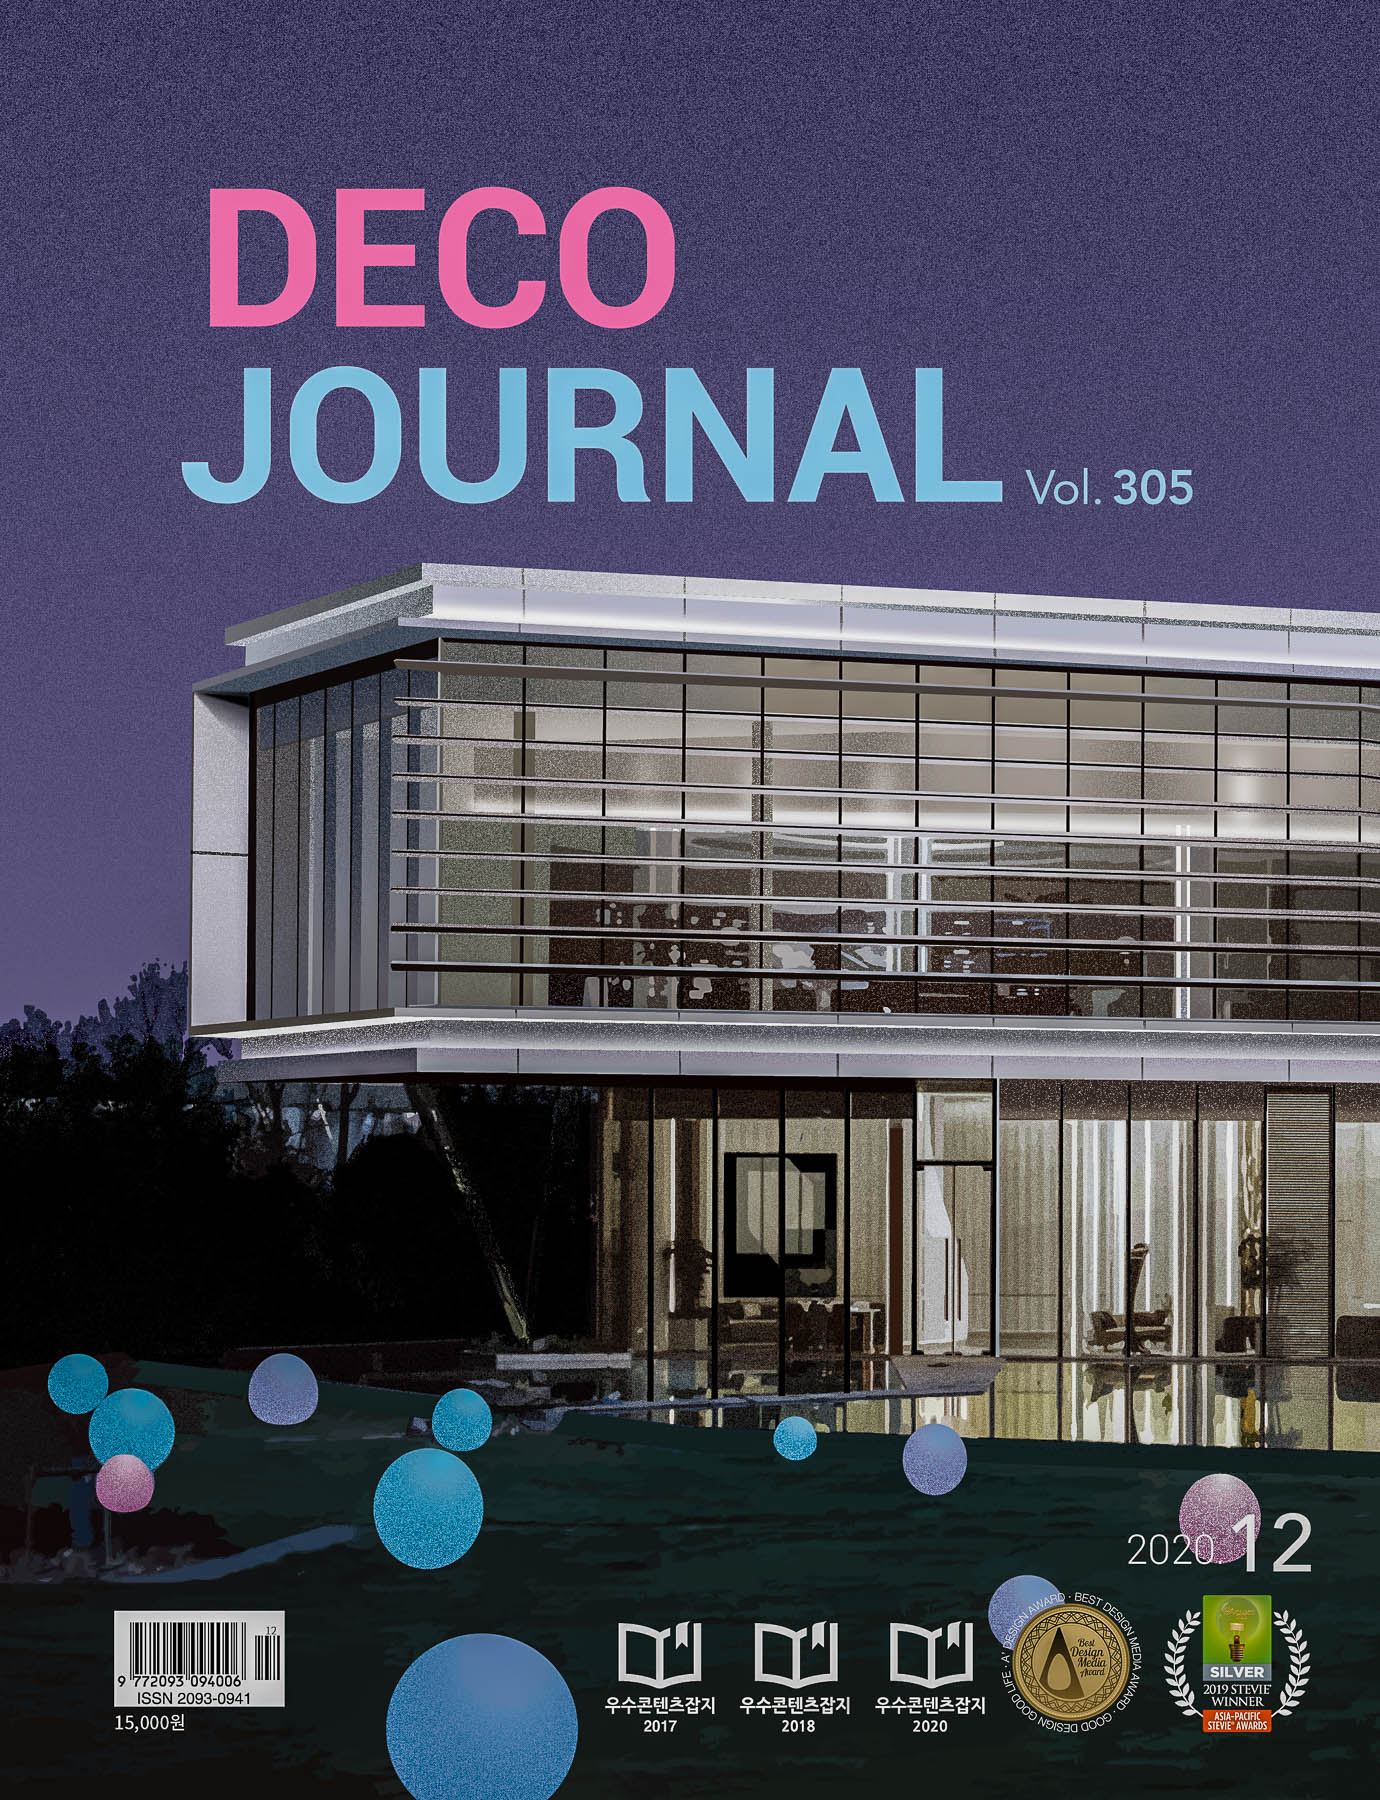 DECO JOURNAL 305 FLORET ARQUITECTURA PORTO